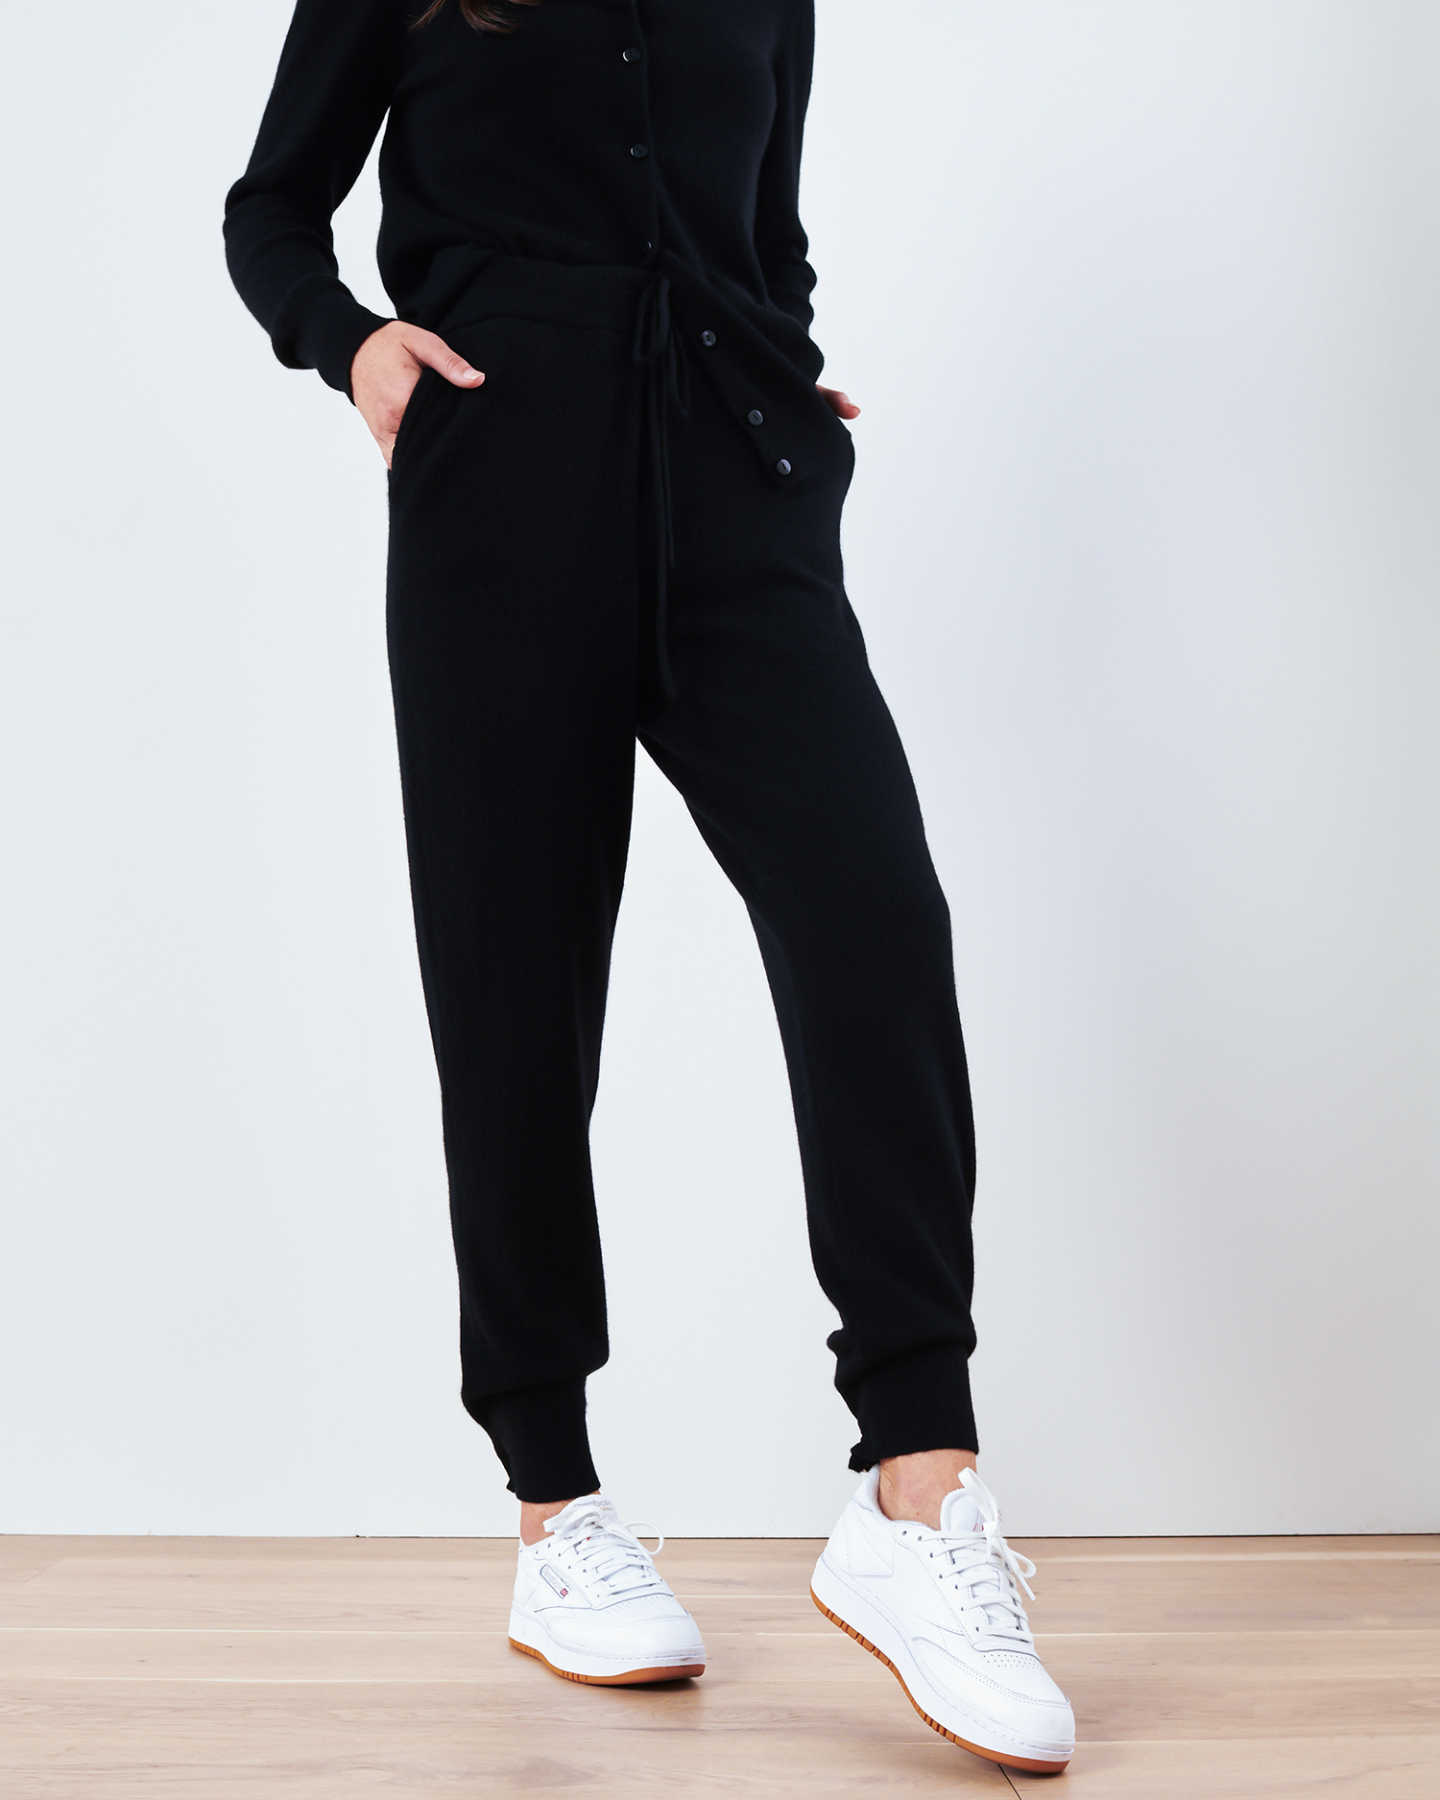 Woman wearing black cashmere sweatpants & cashmere joggers with white sneakers